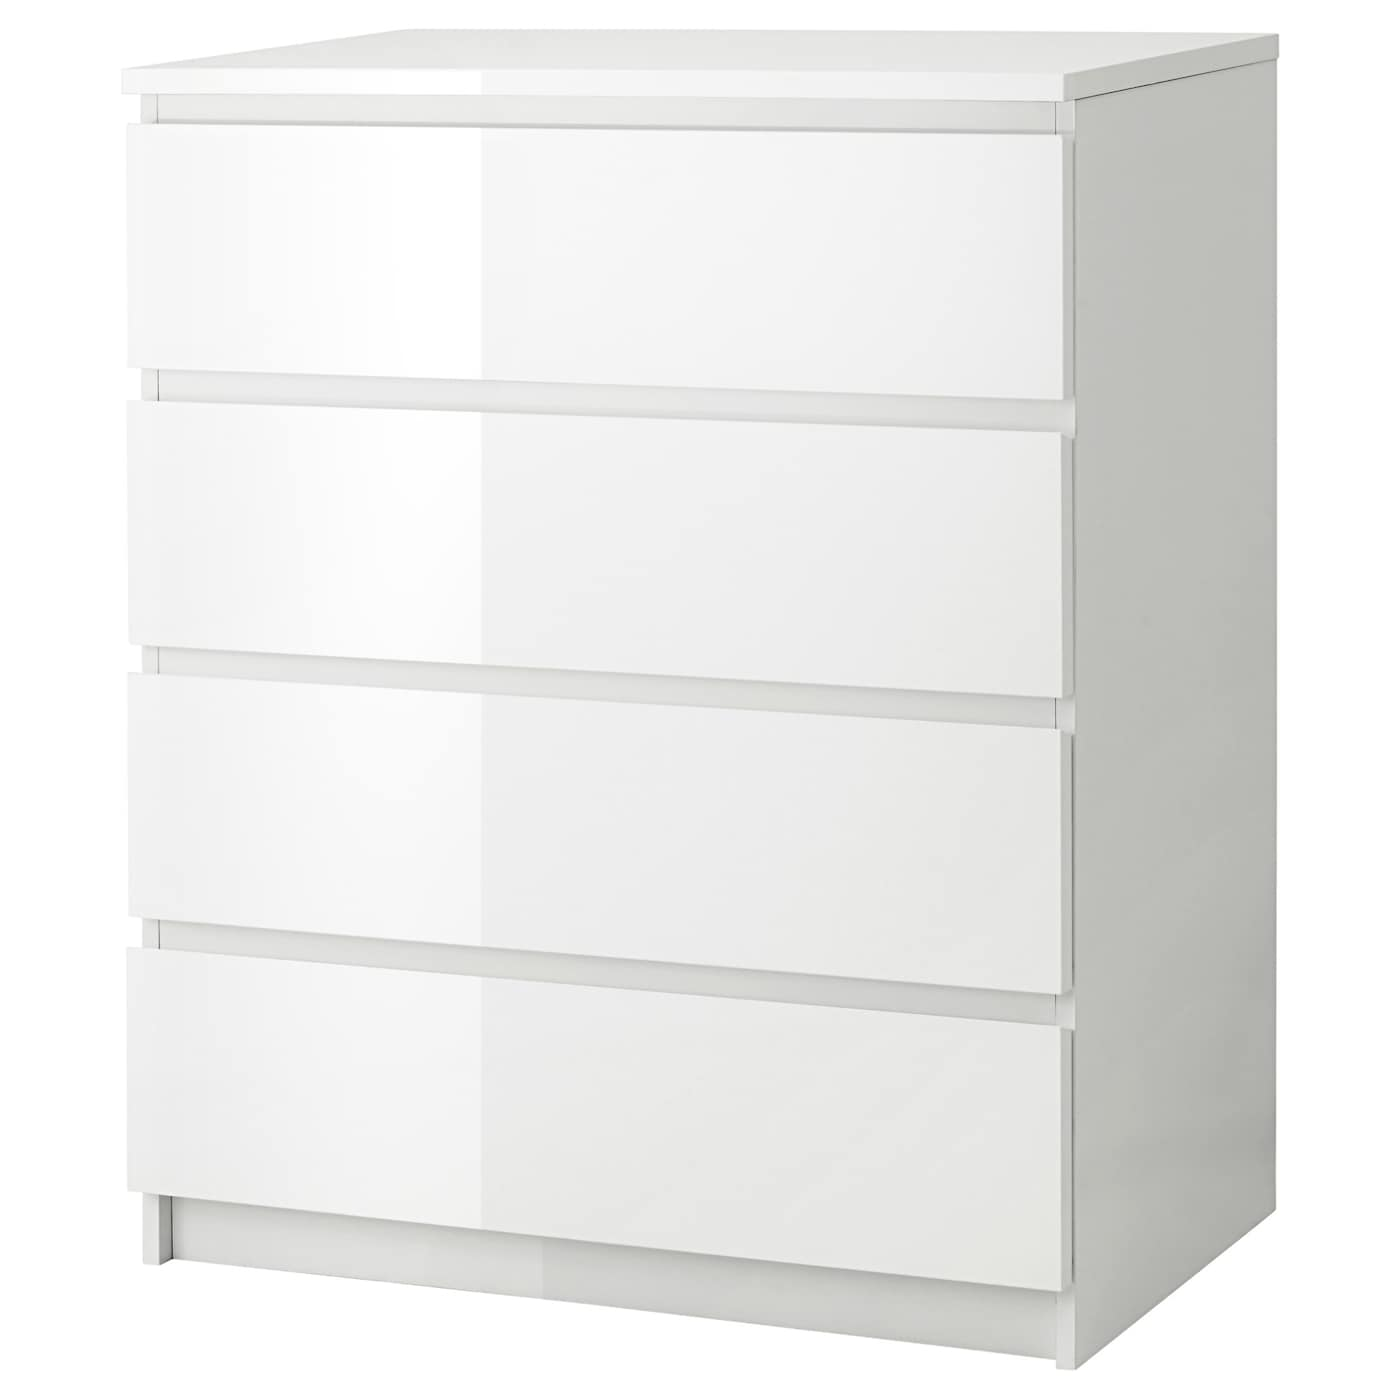 Malm chest of 4 drawers white high gloss 80x100 cm ikea - Ikea malm letto contenitore ...